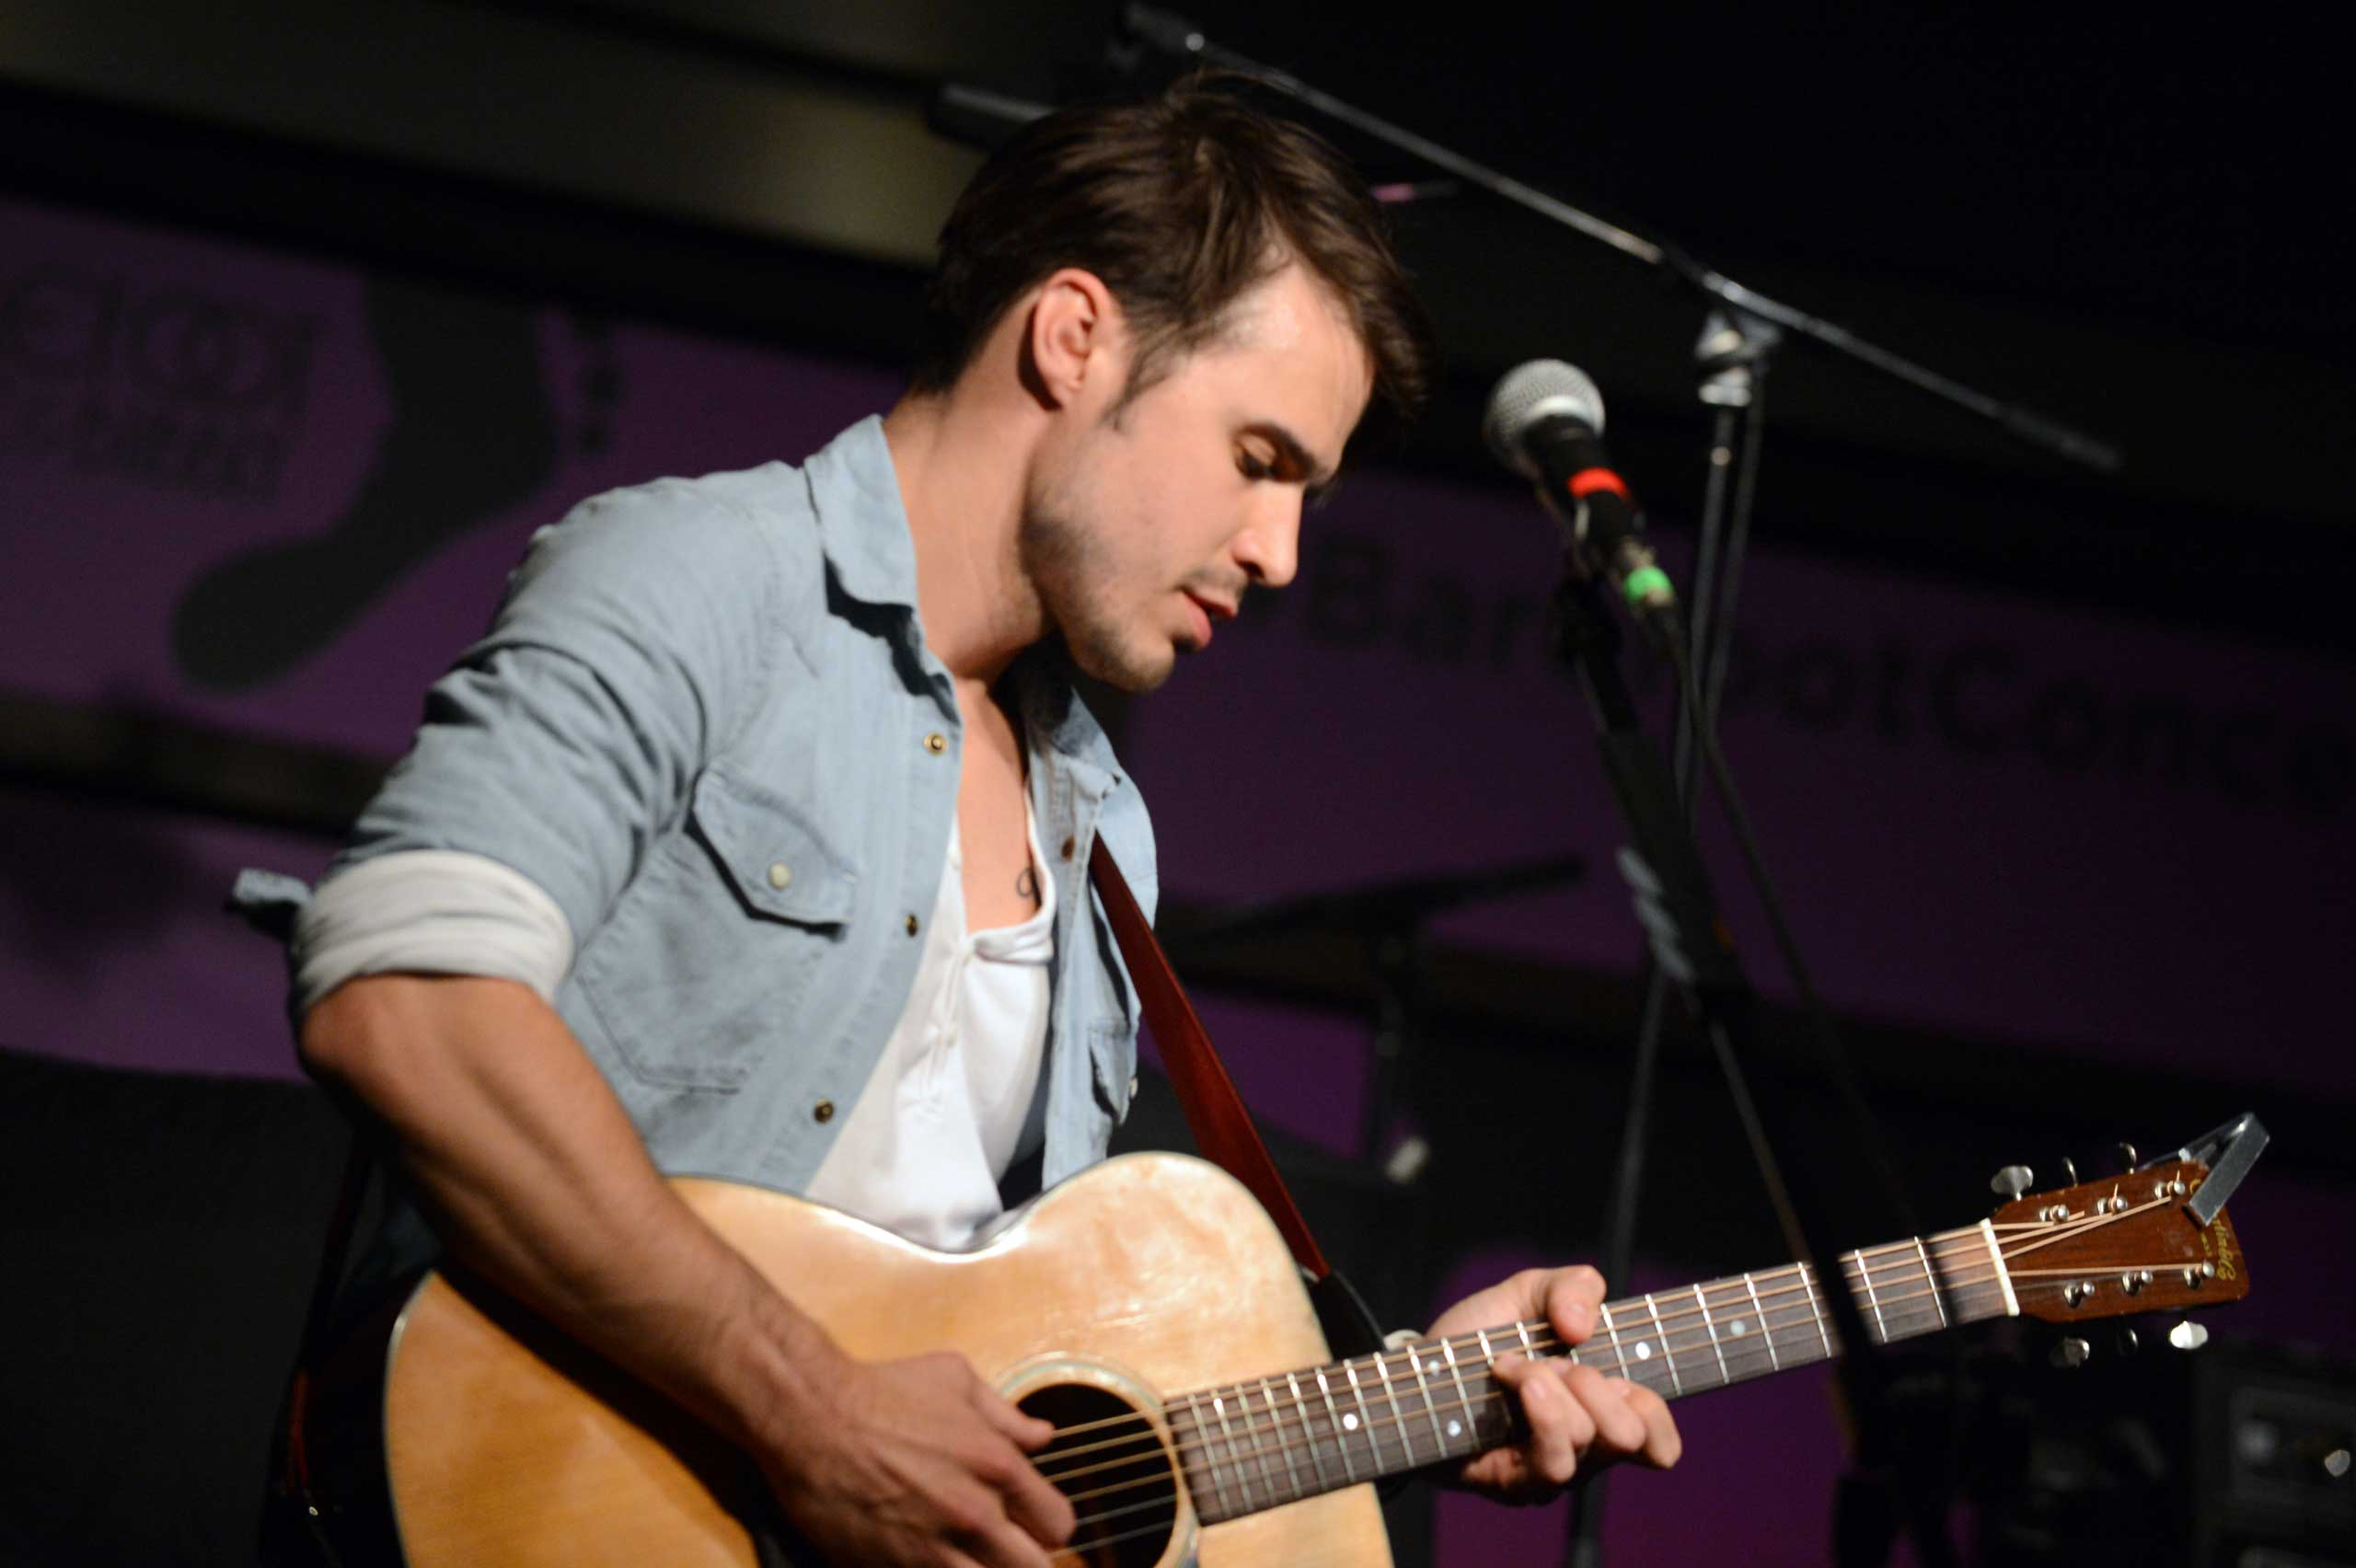 <b>Kris Allen</b>, winner of season 8, performs at the Soles4Souls charity concert, sponsored by Barefoot Wine &amp; Bubbly at the Bridge Building in Nashville on April 1, 2014.